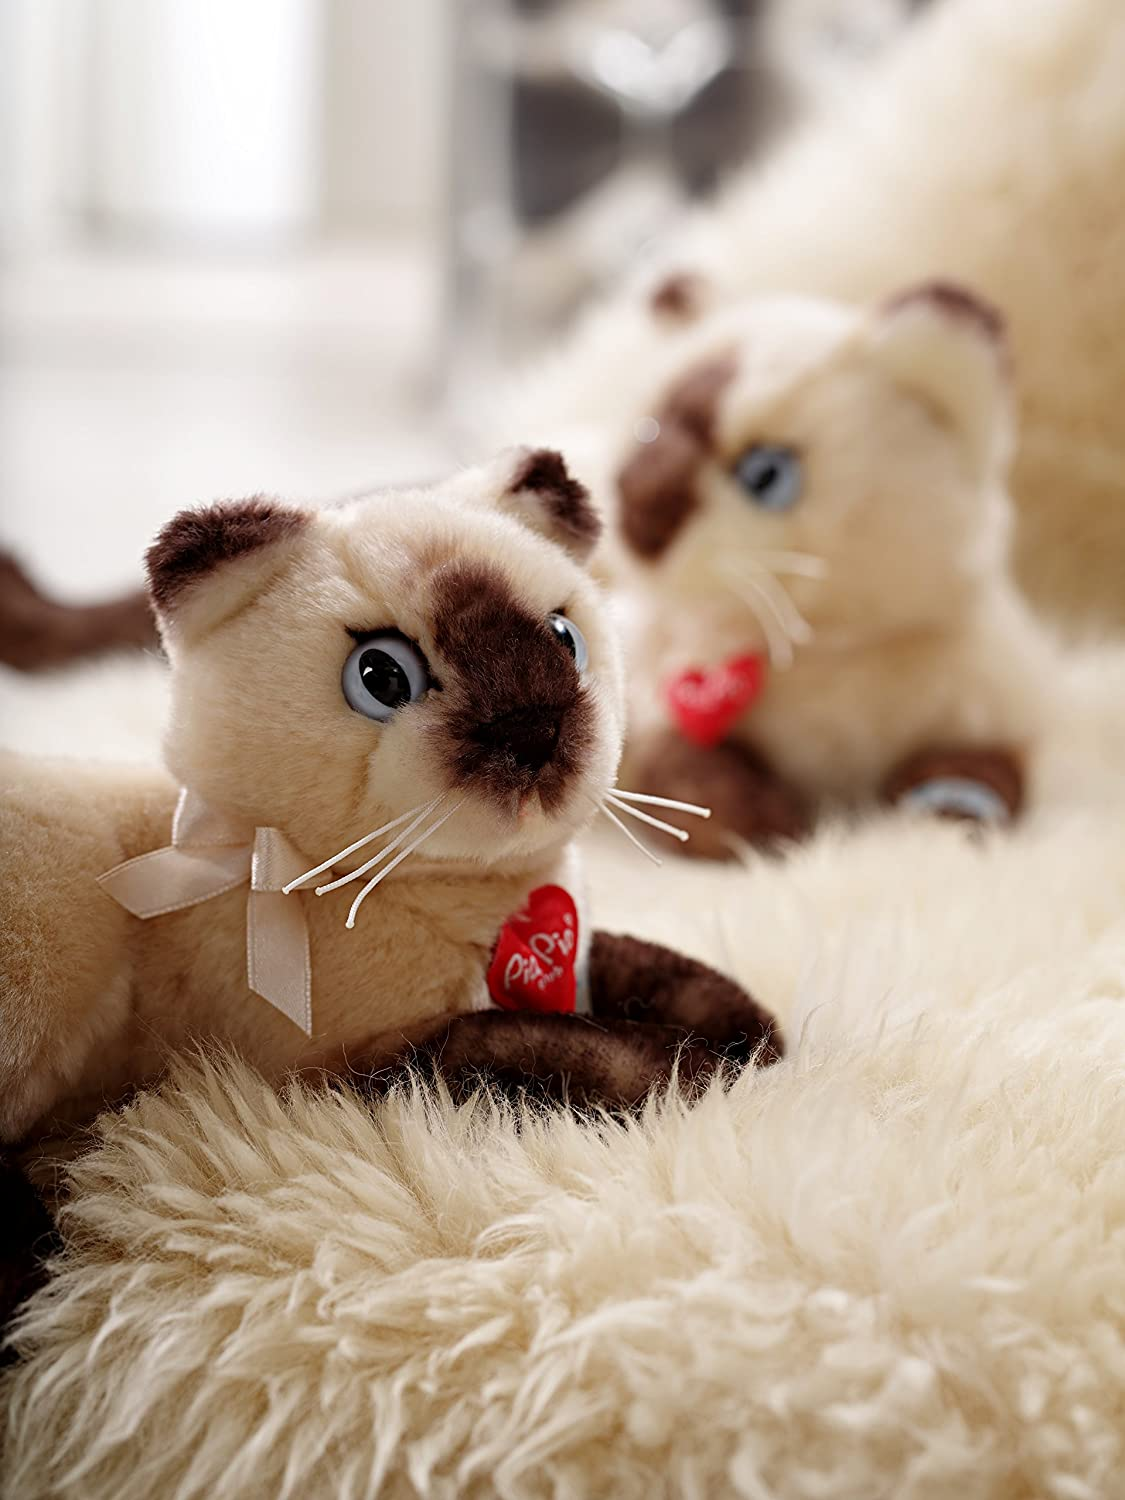 Amazon.com: Heinrich Bauer Pia Pia Club 17071 Siamese Cat Lying Down 30 cm by Bauer: Toys & Games